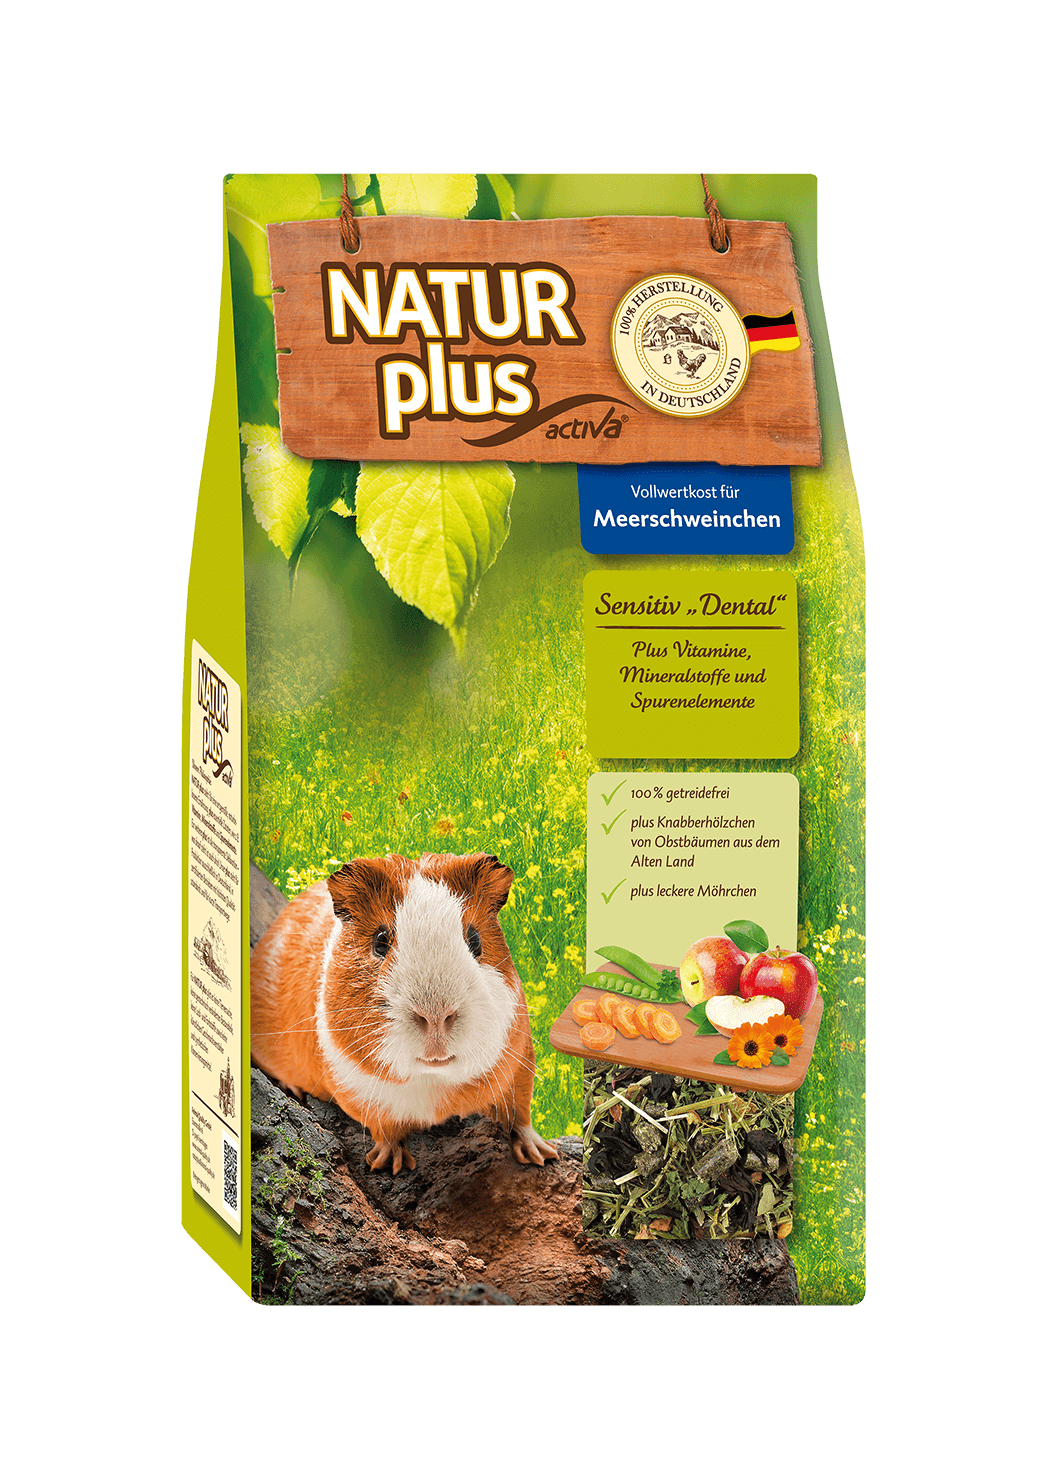 Natur plus Meerschweinchen Sensitiv Dental